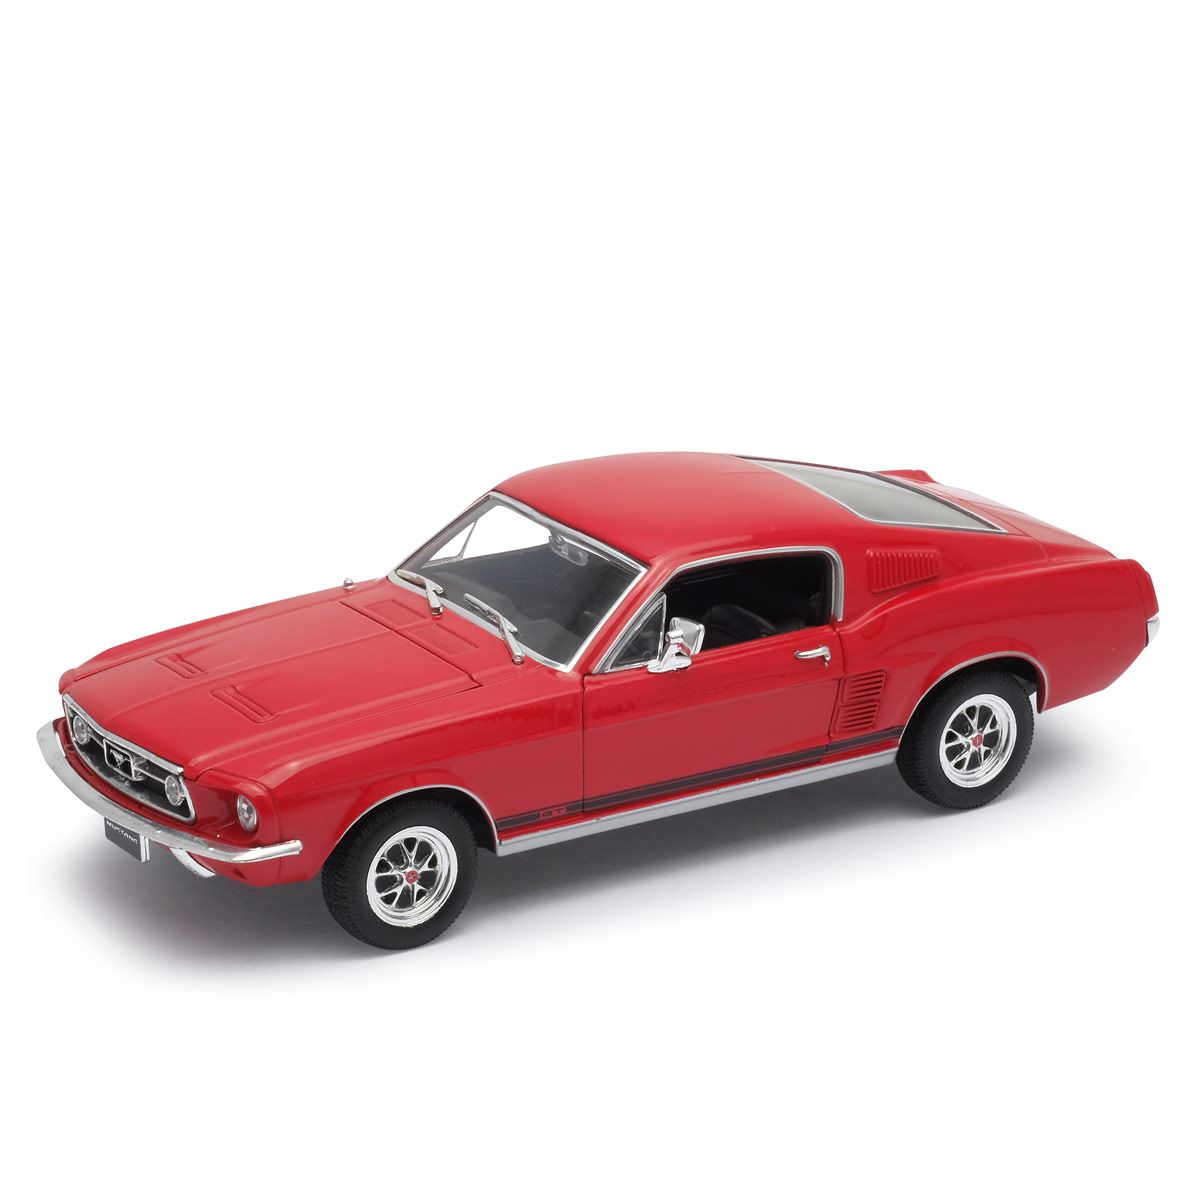 Escala 1:24 1967 Ford Mustang Gt